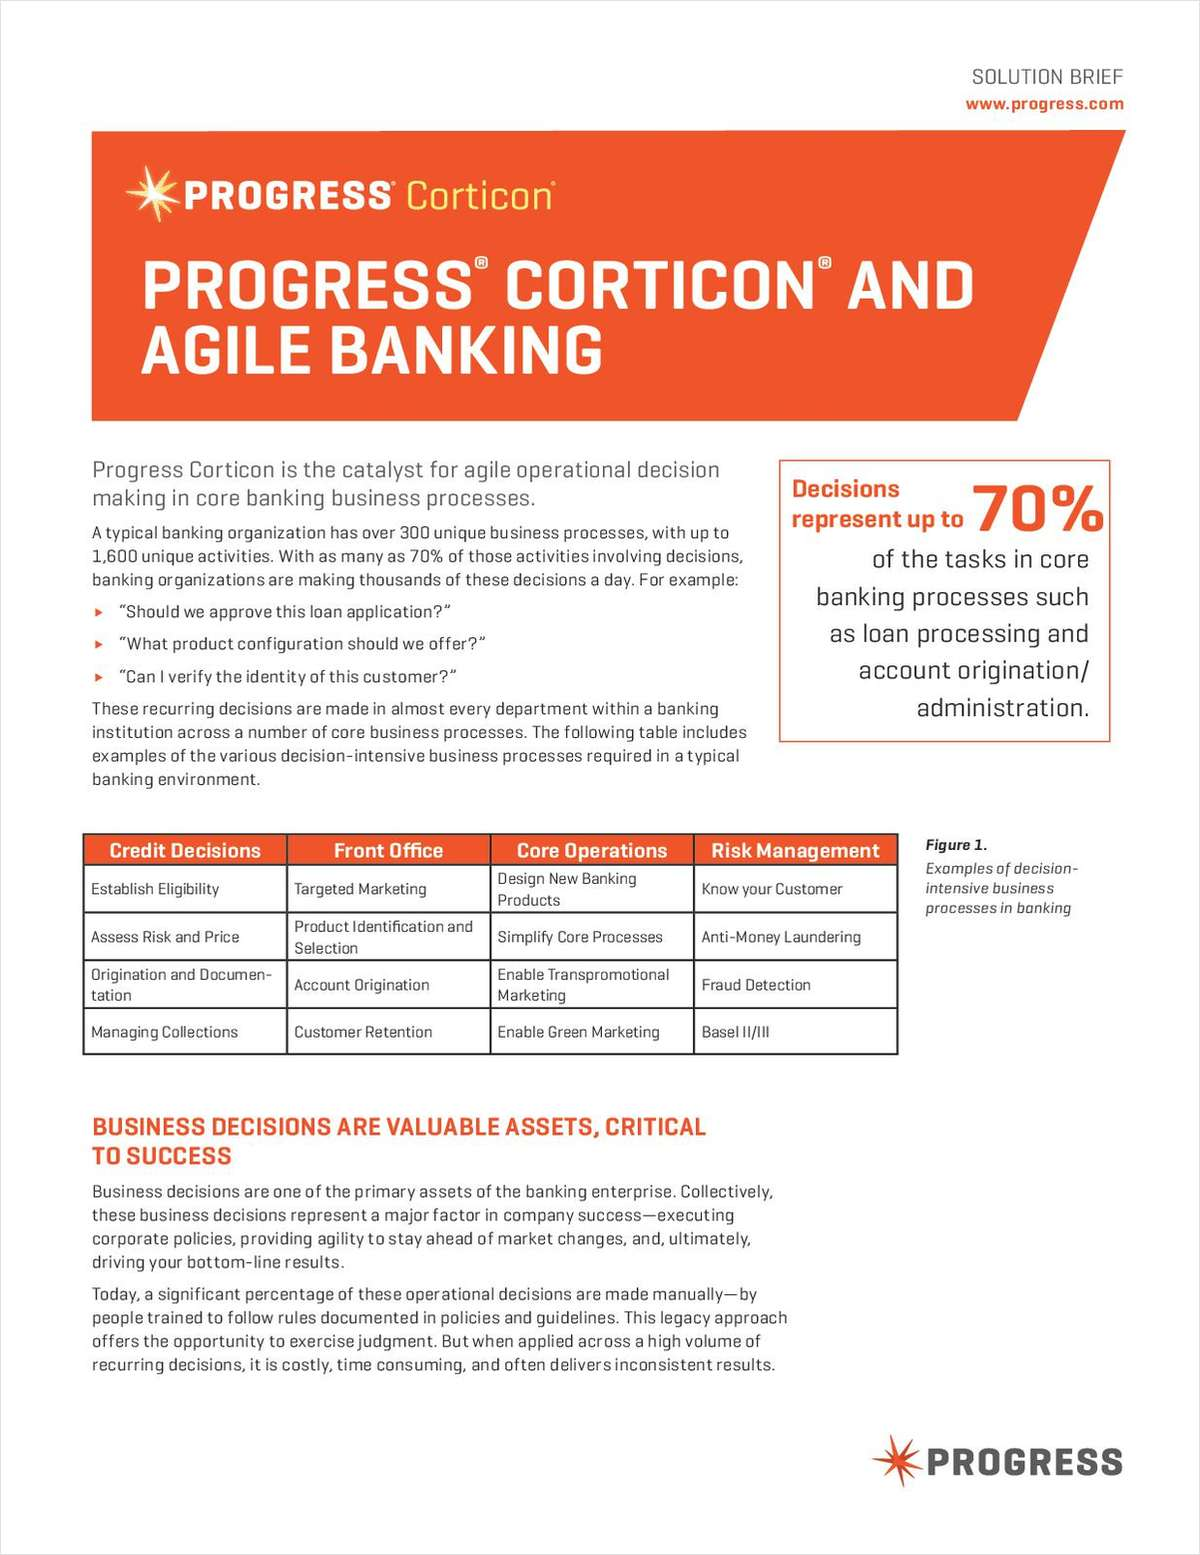 Agile Operational Decision Making in Core Banking Business Processes